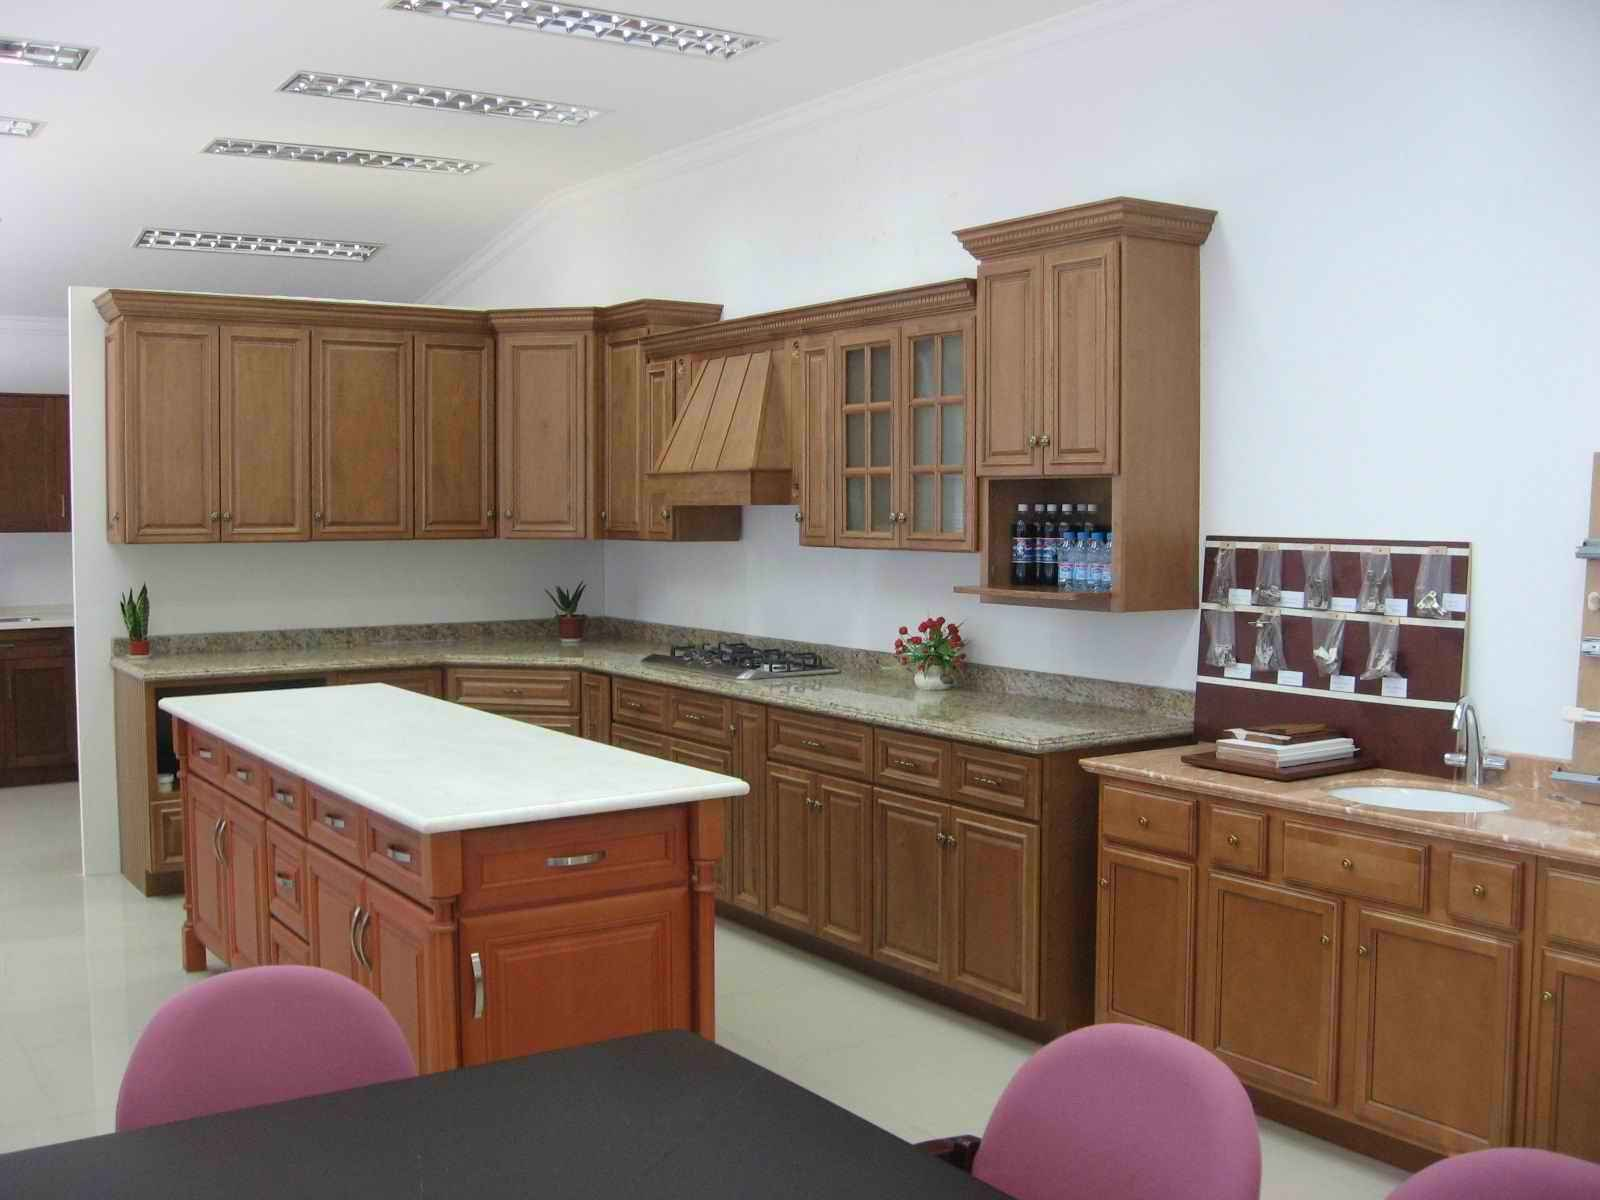 Cheap cabinets for kitchens shopping tips for Pictures of kitchen cupboards